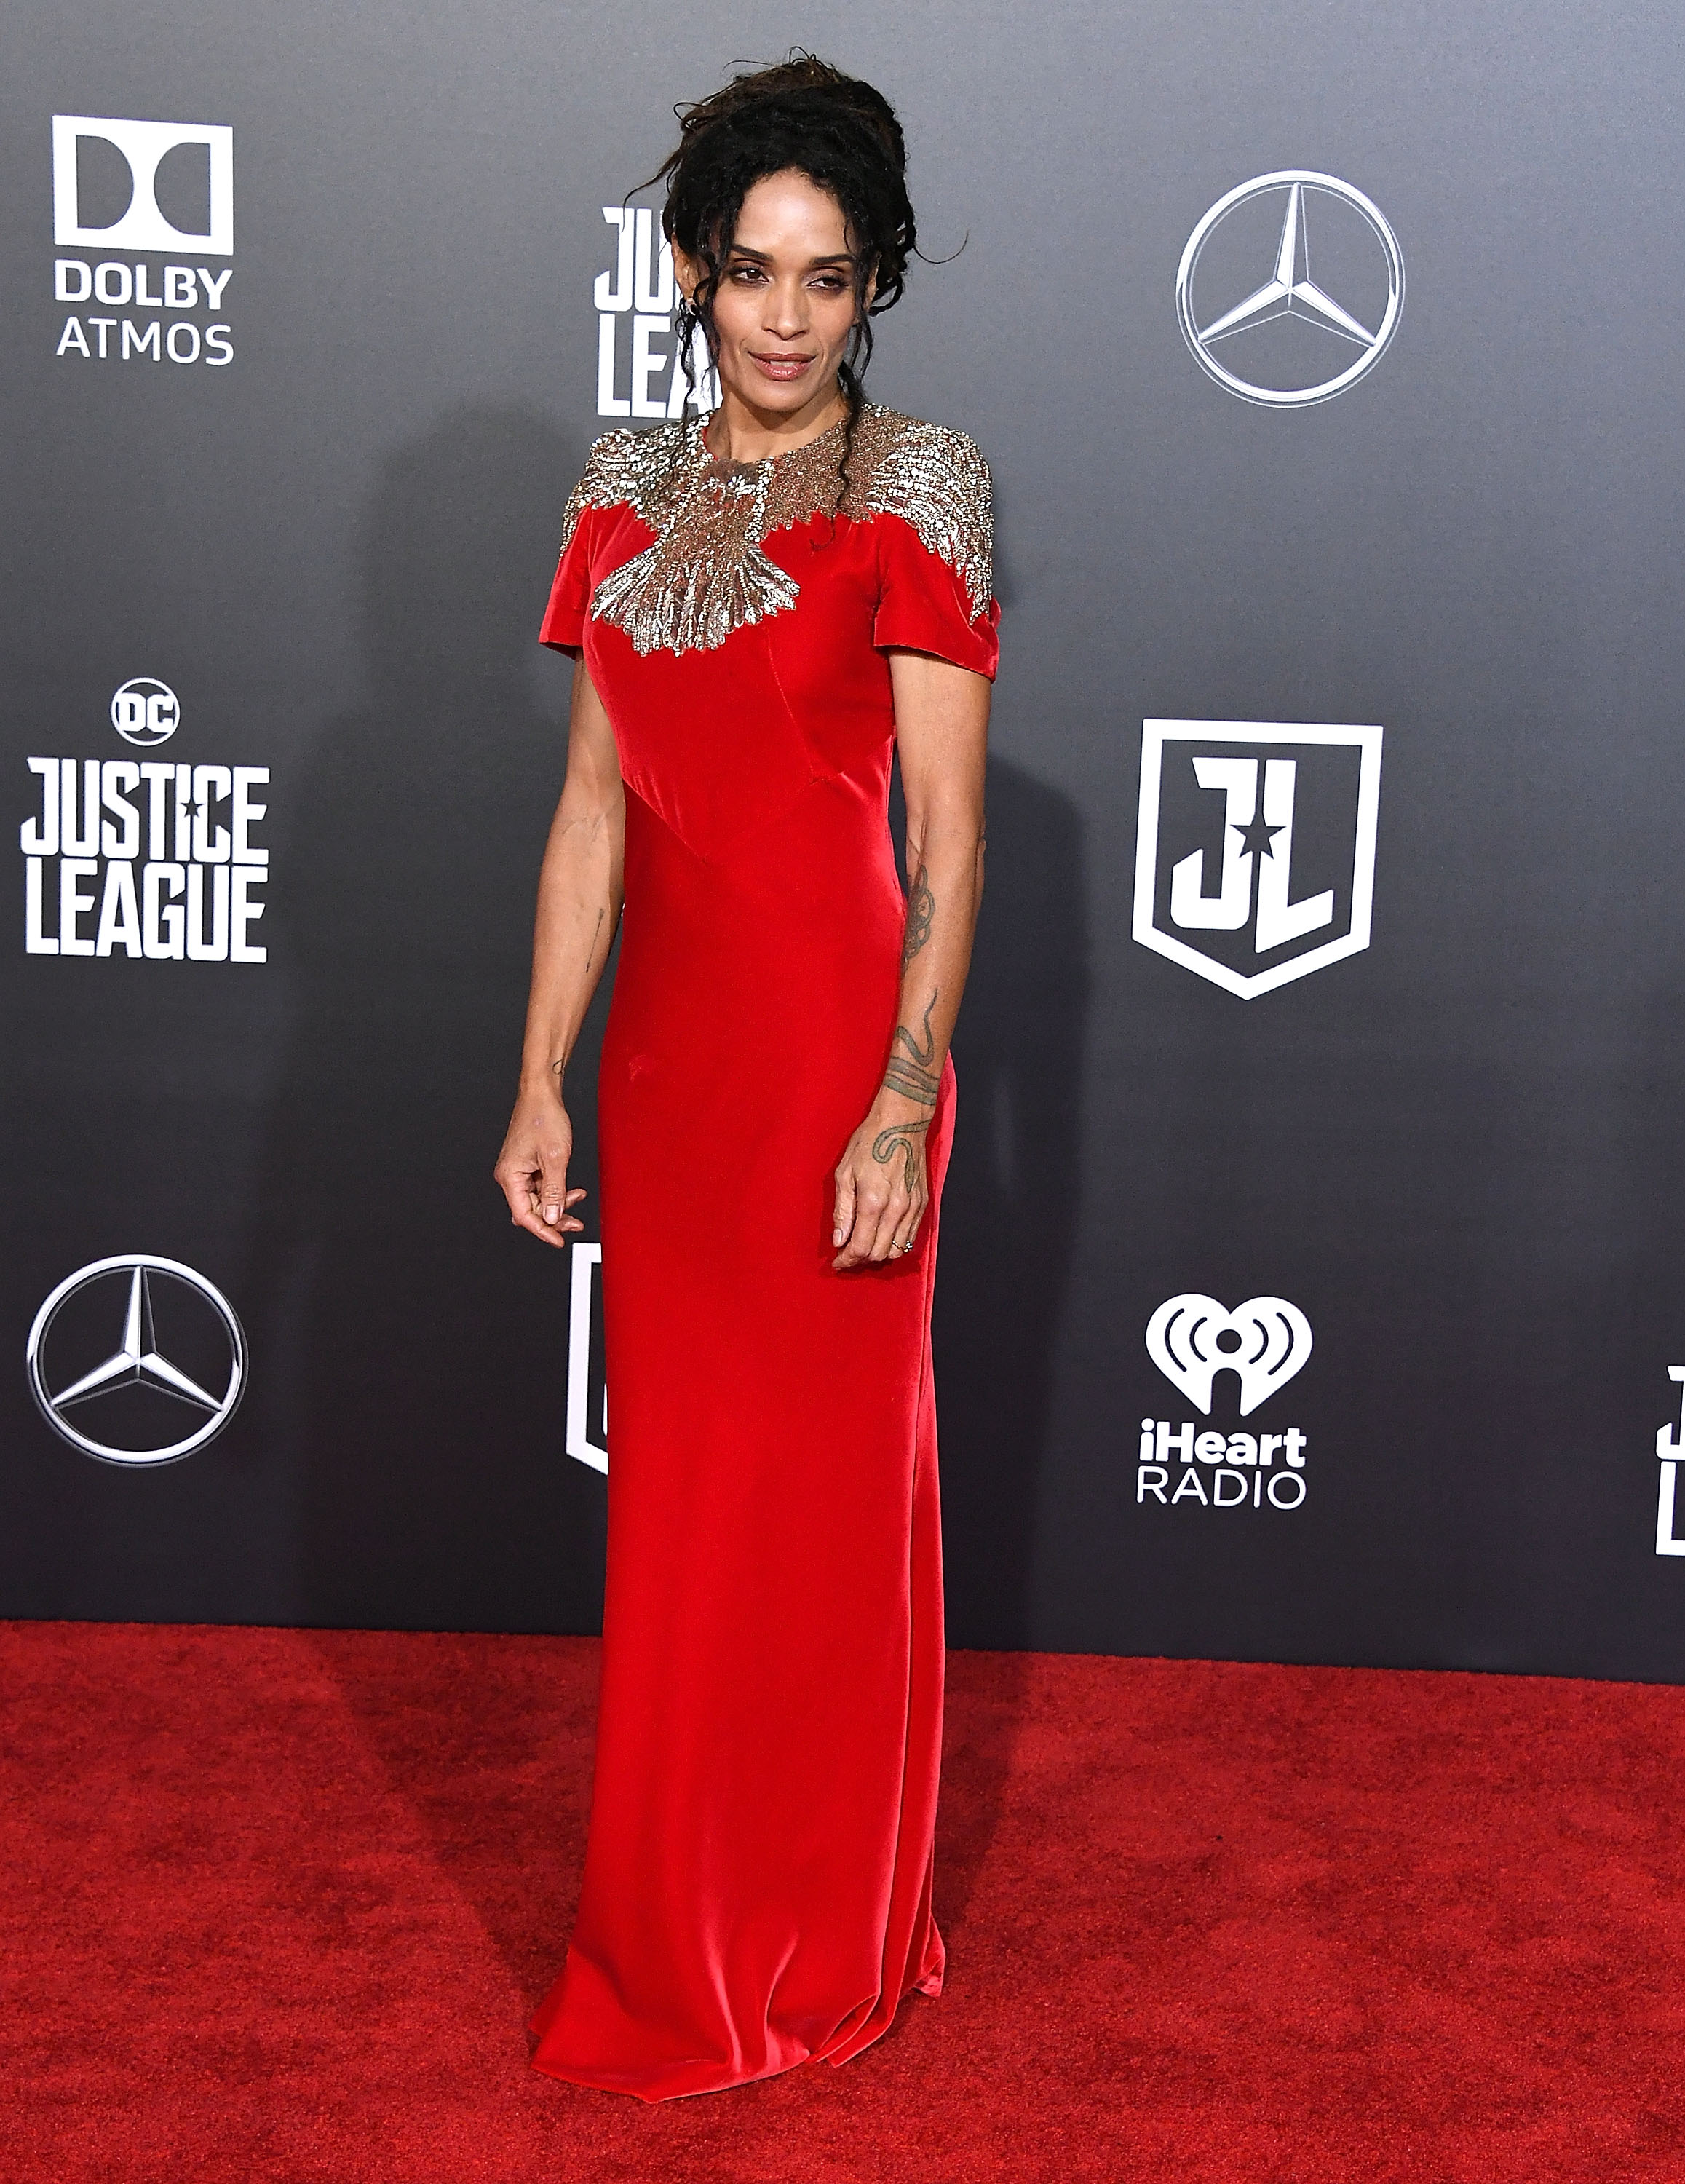 Premiere Of Warner Bros. Pictures' 'Justice League' - Arrivals